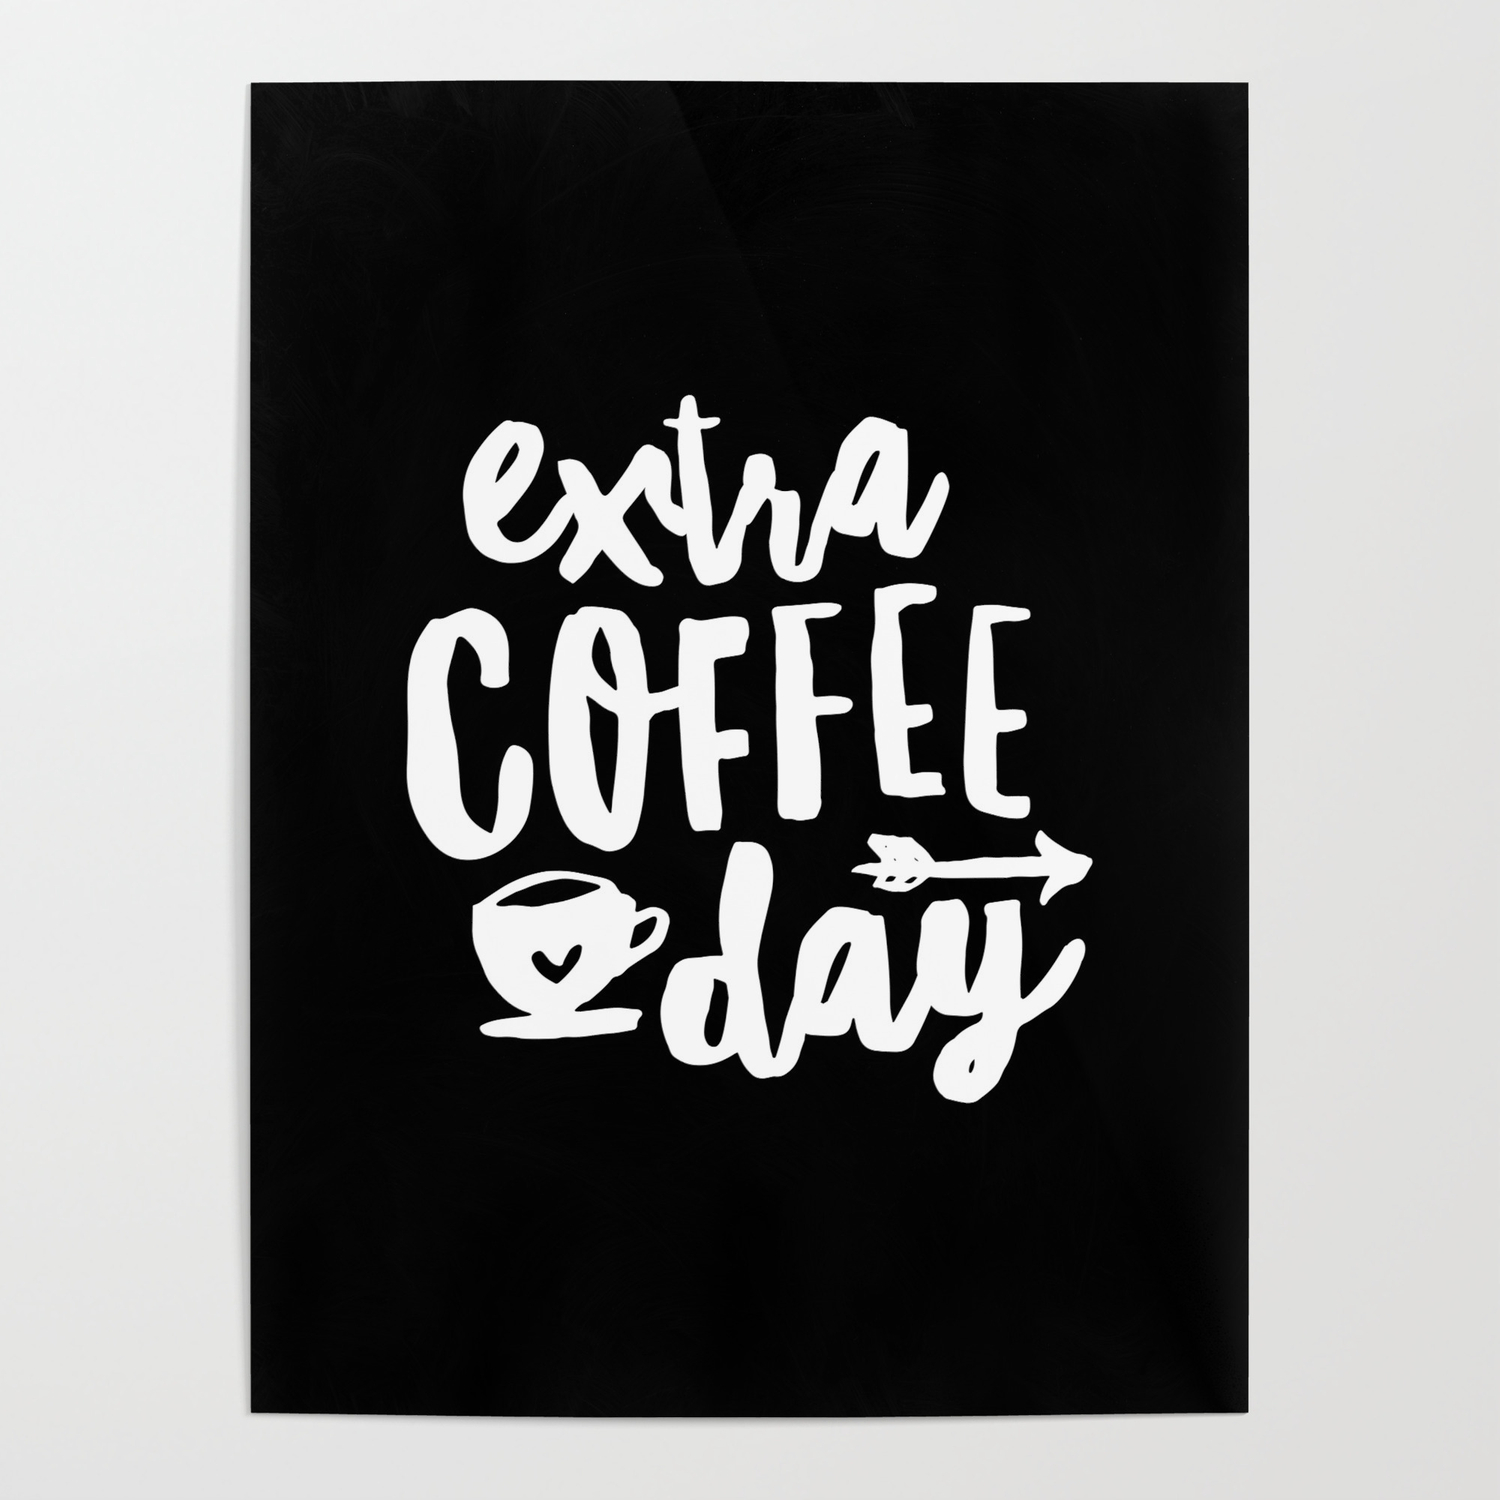 Extra Coffee Day Hand Lettered